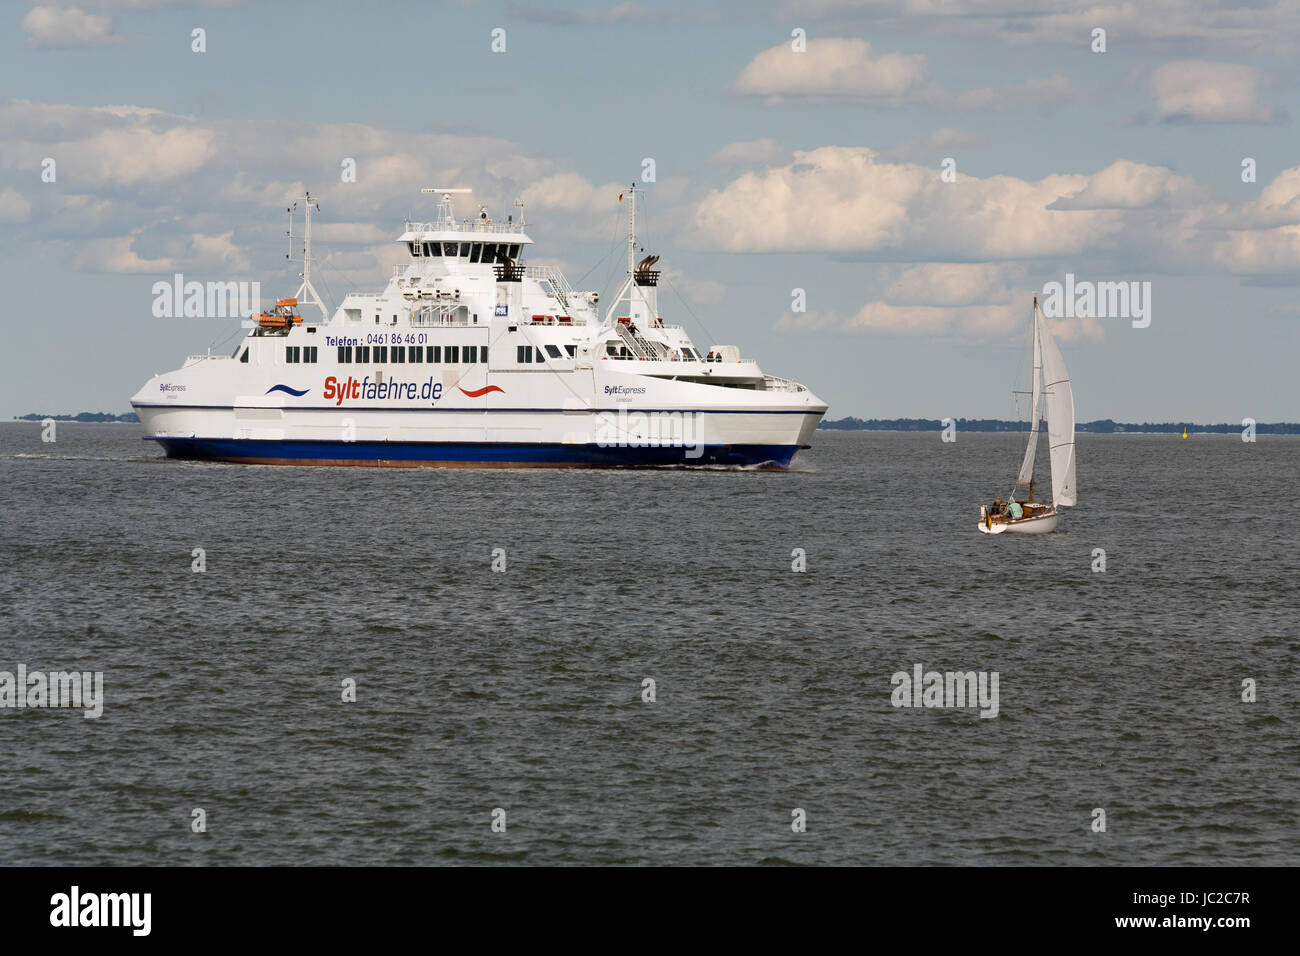 List, Germany, the double-ended ferry SyltExpress in the North Sea off Sylt - Stock Image